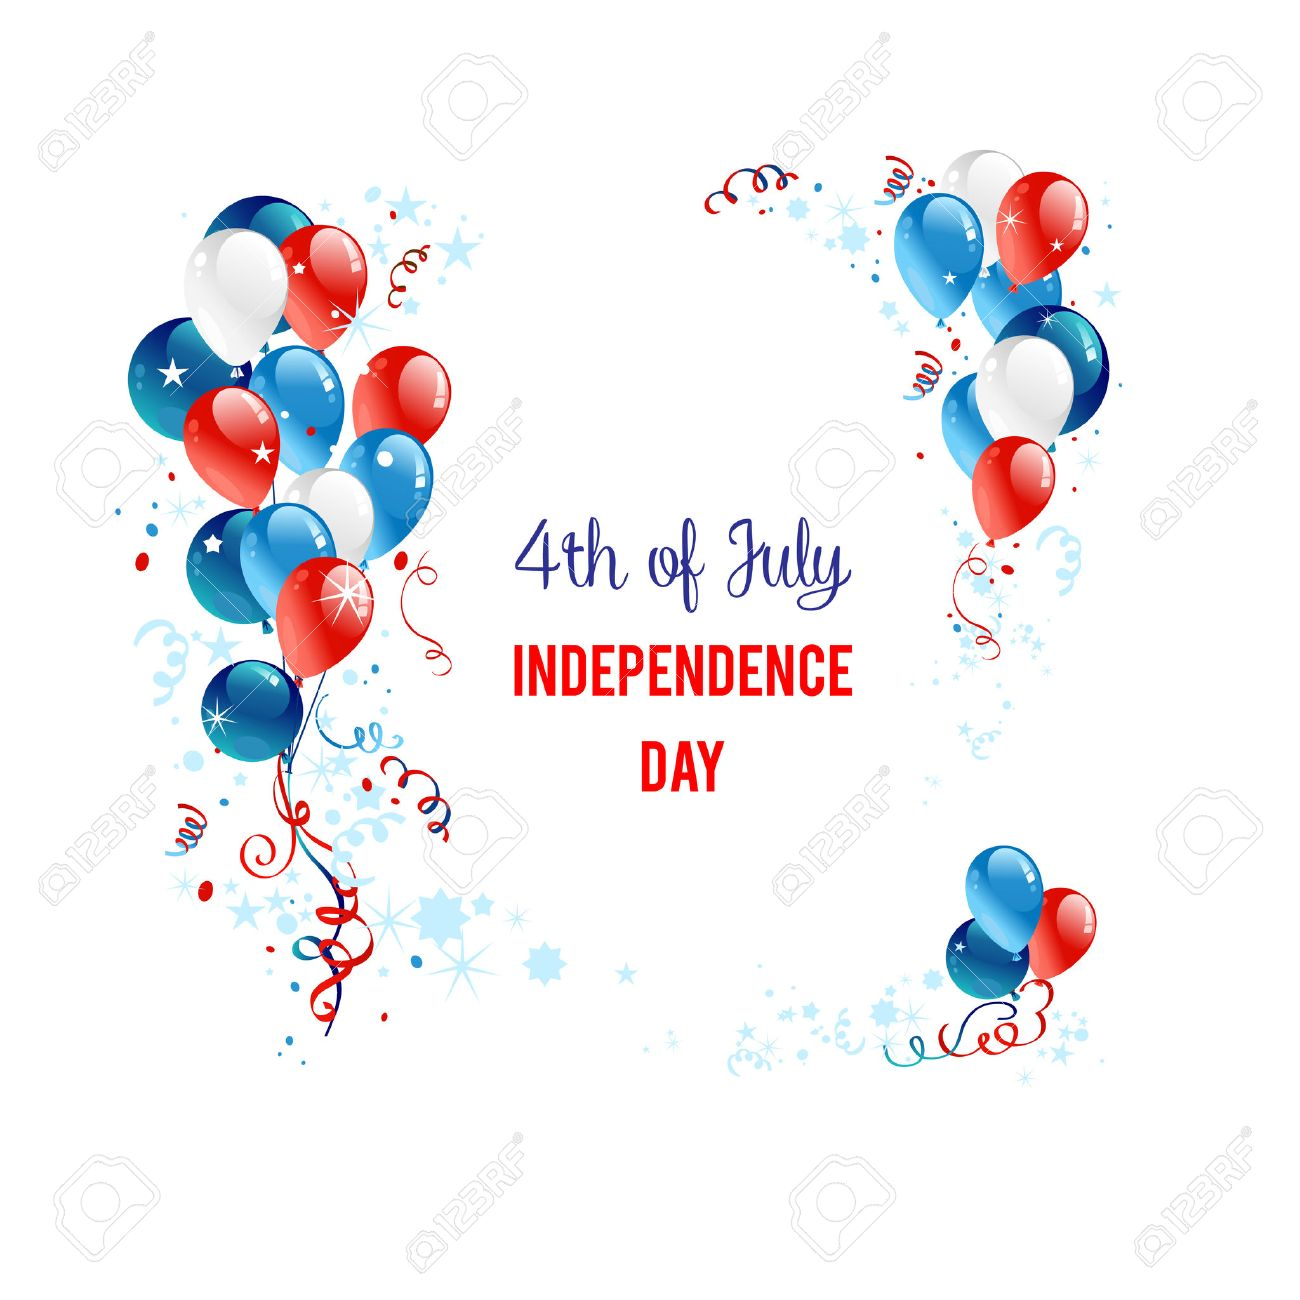 Independence day background with balloons. Holiday patriotic card for Independence day, Memorial day, Veterans day, Presidents day and so on. - 41426302